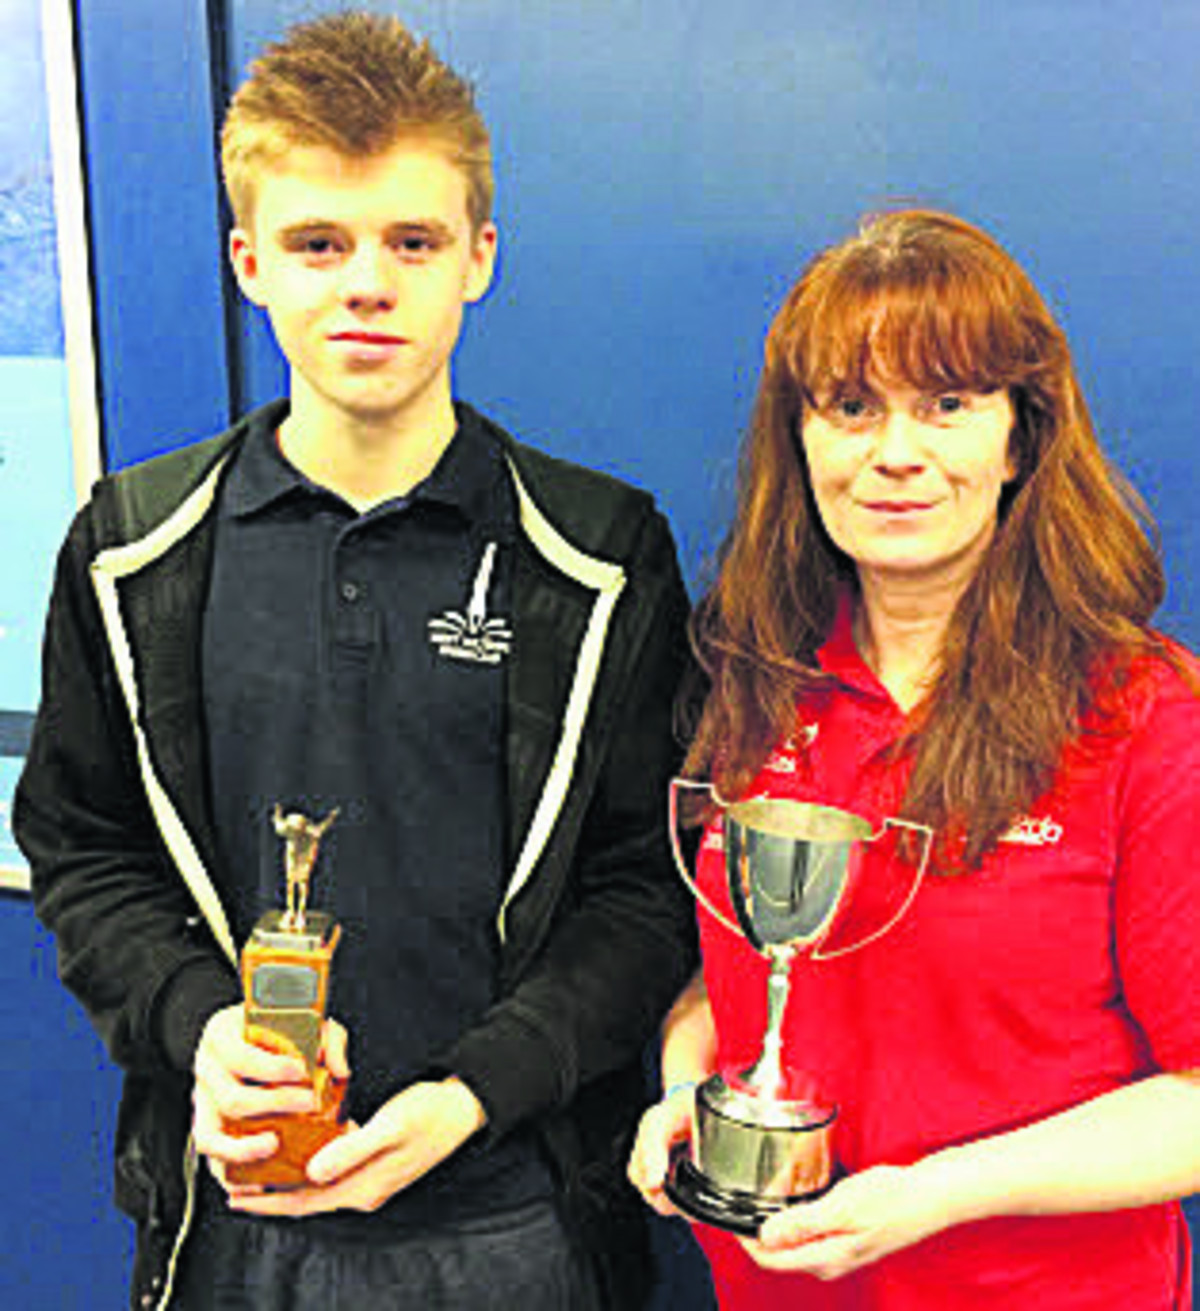 West Wilts Diving Club's Finn Aubrey and Melanie Sweetman